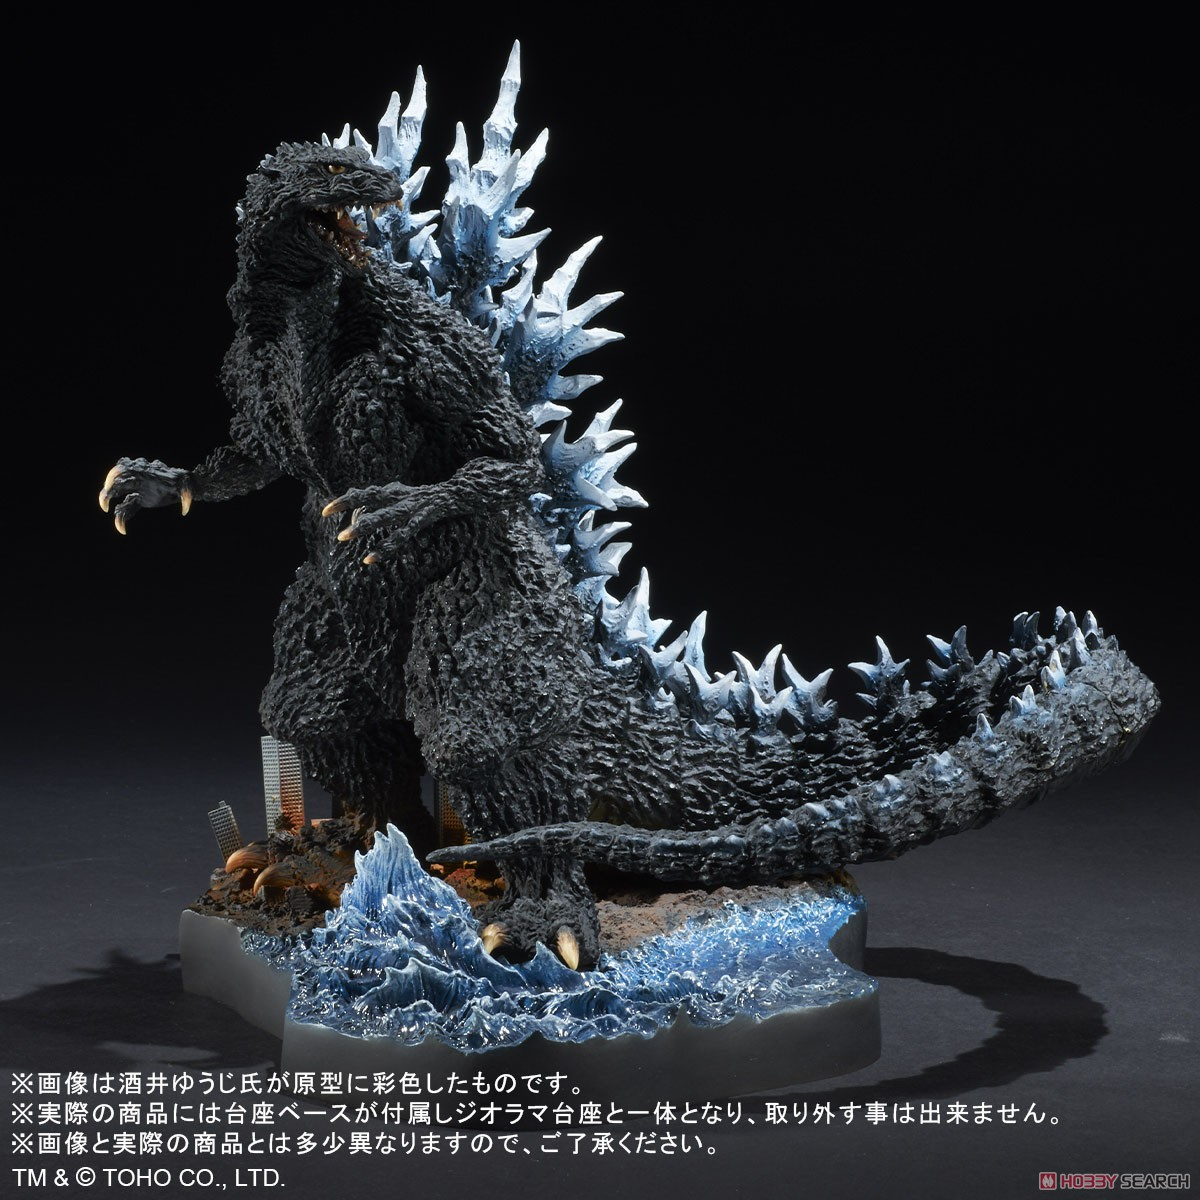 Real Master Collection Yuji Sakai Best Works Selection Godzilla (2004) Poster Version `Farewell, Godzilla.` (Completed) Item picture4